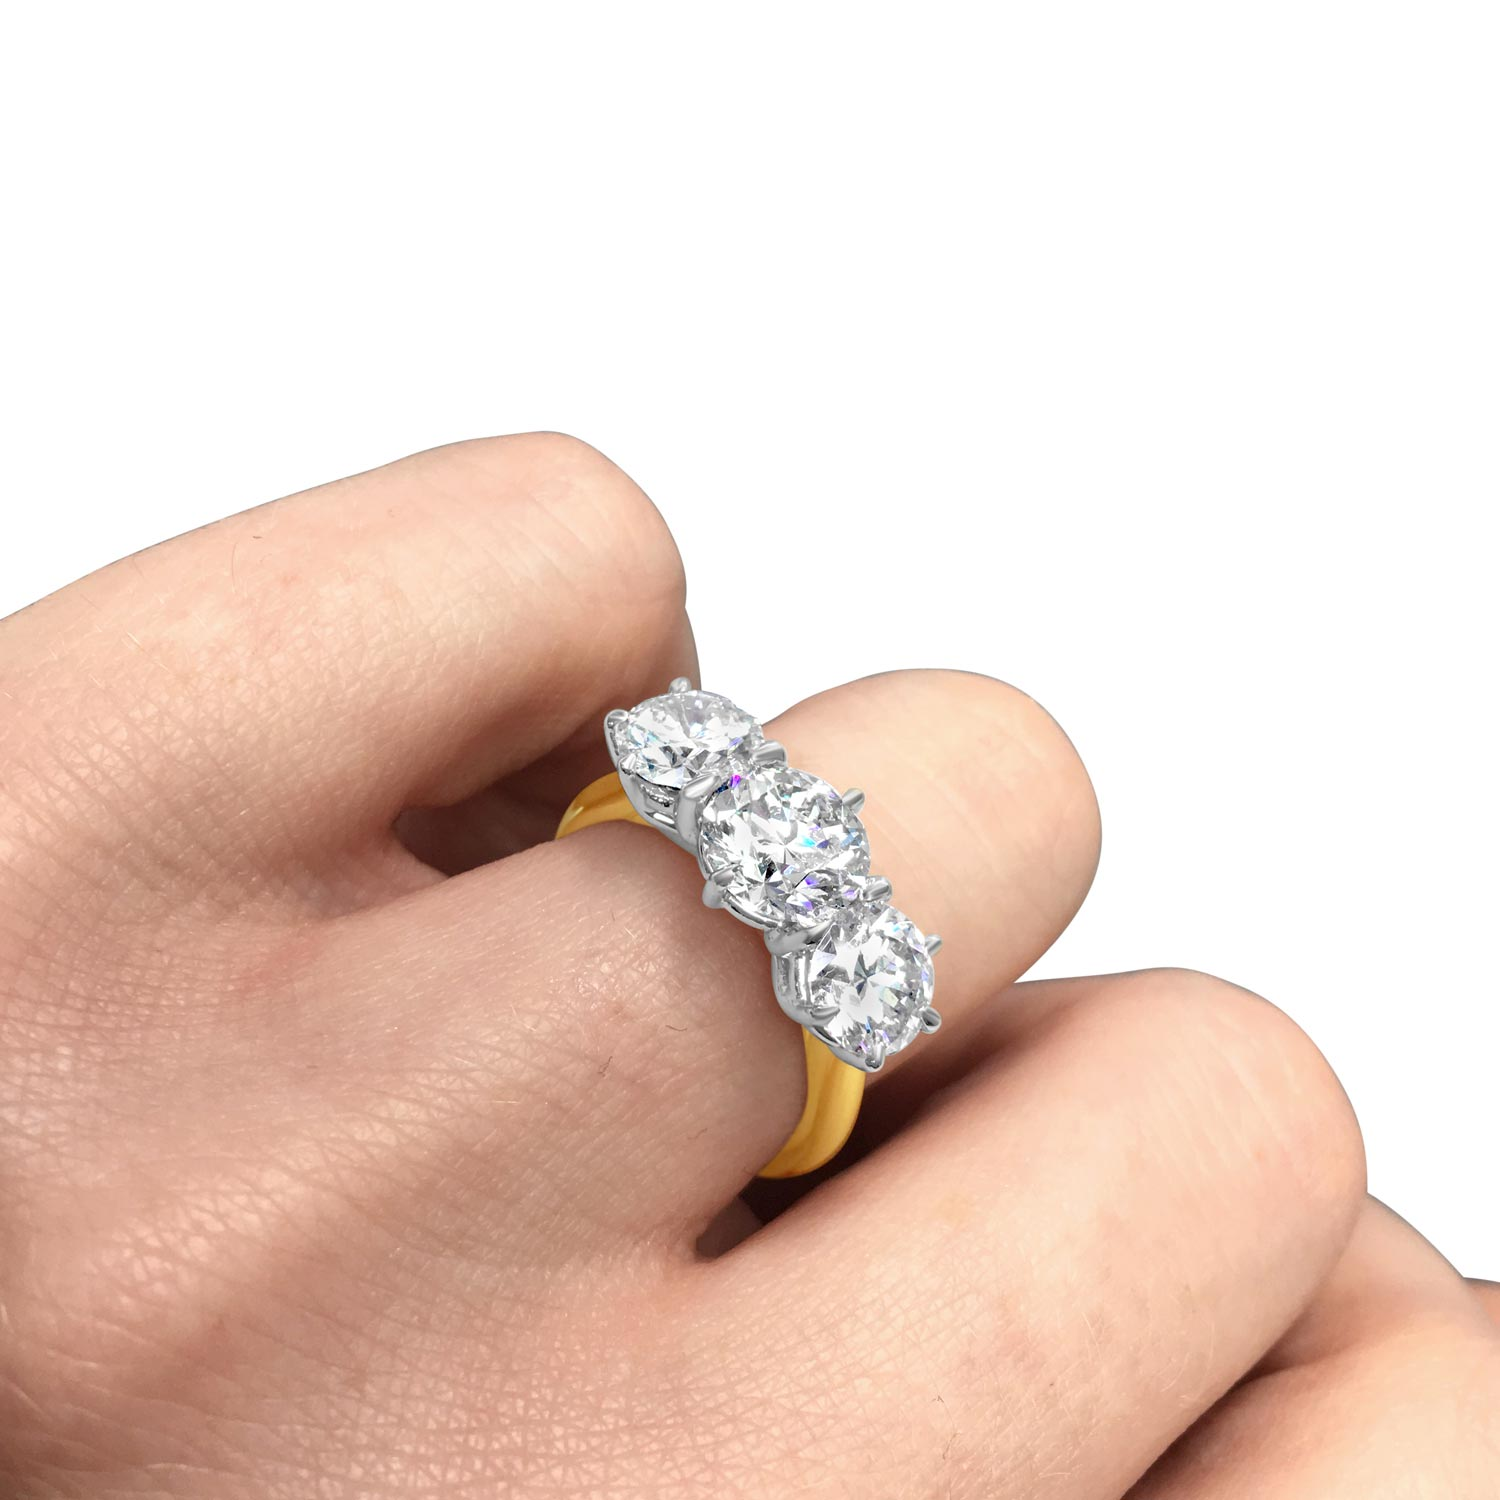 Brilliant-cut diamond three-stone claw-set ring in 18ct white and yellow gold hand